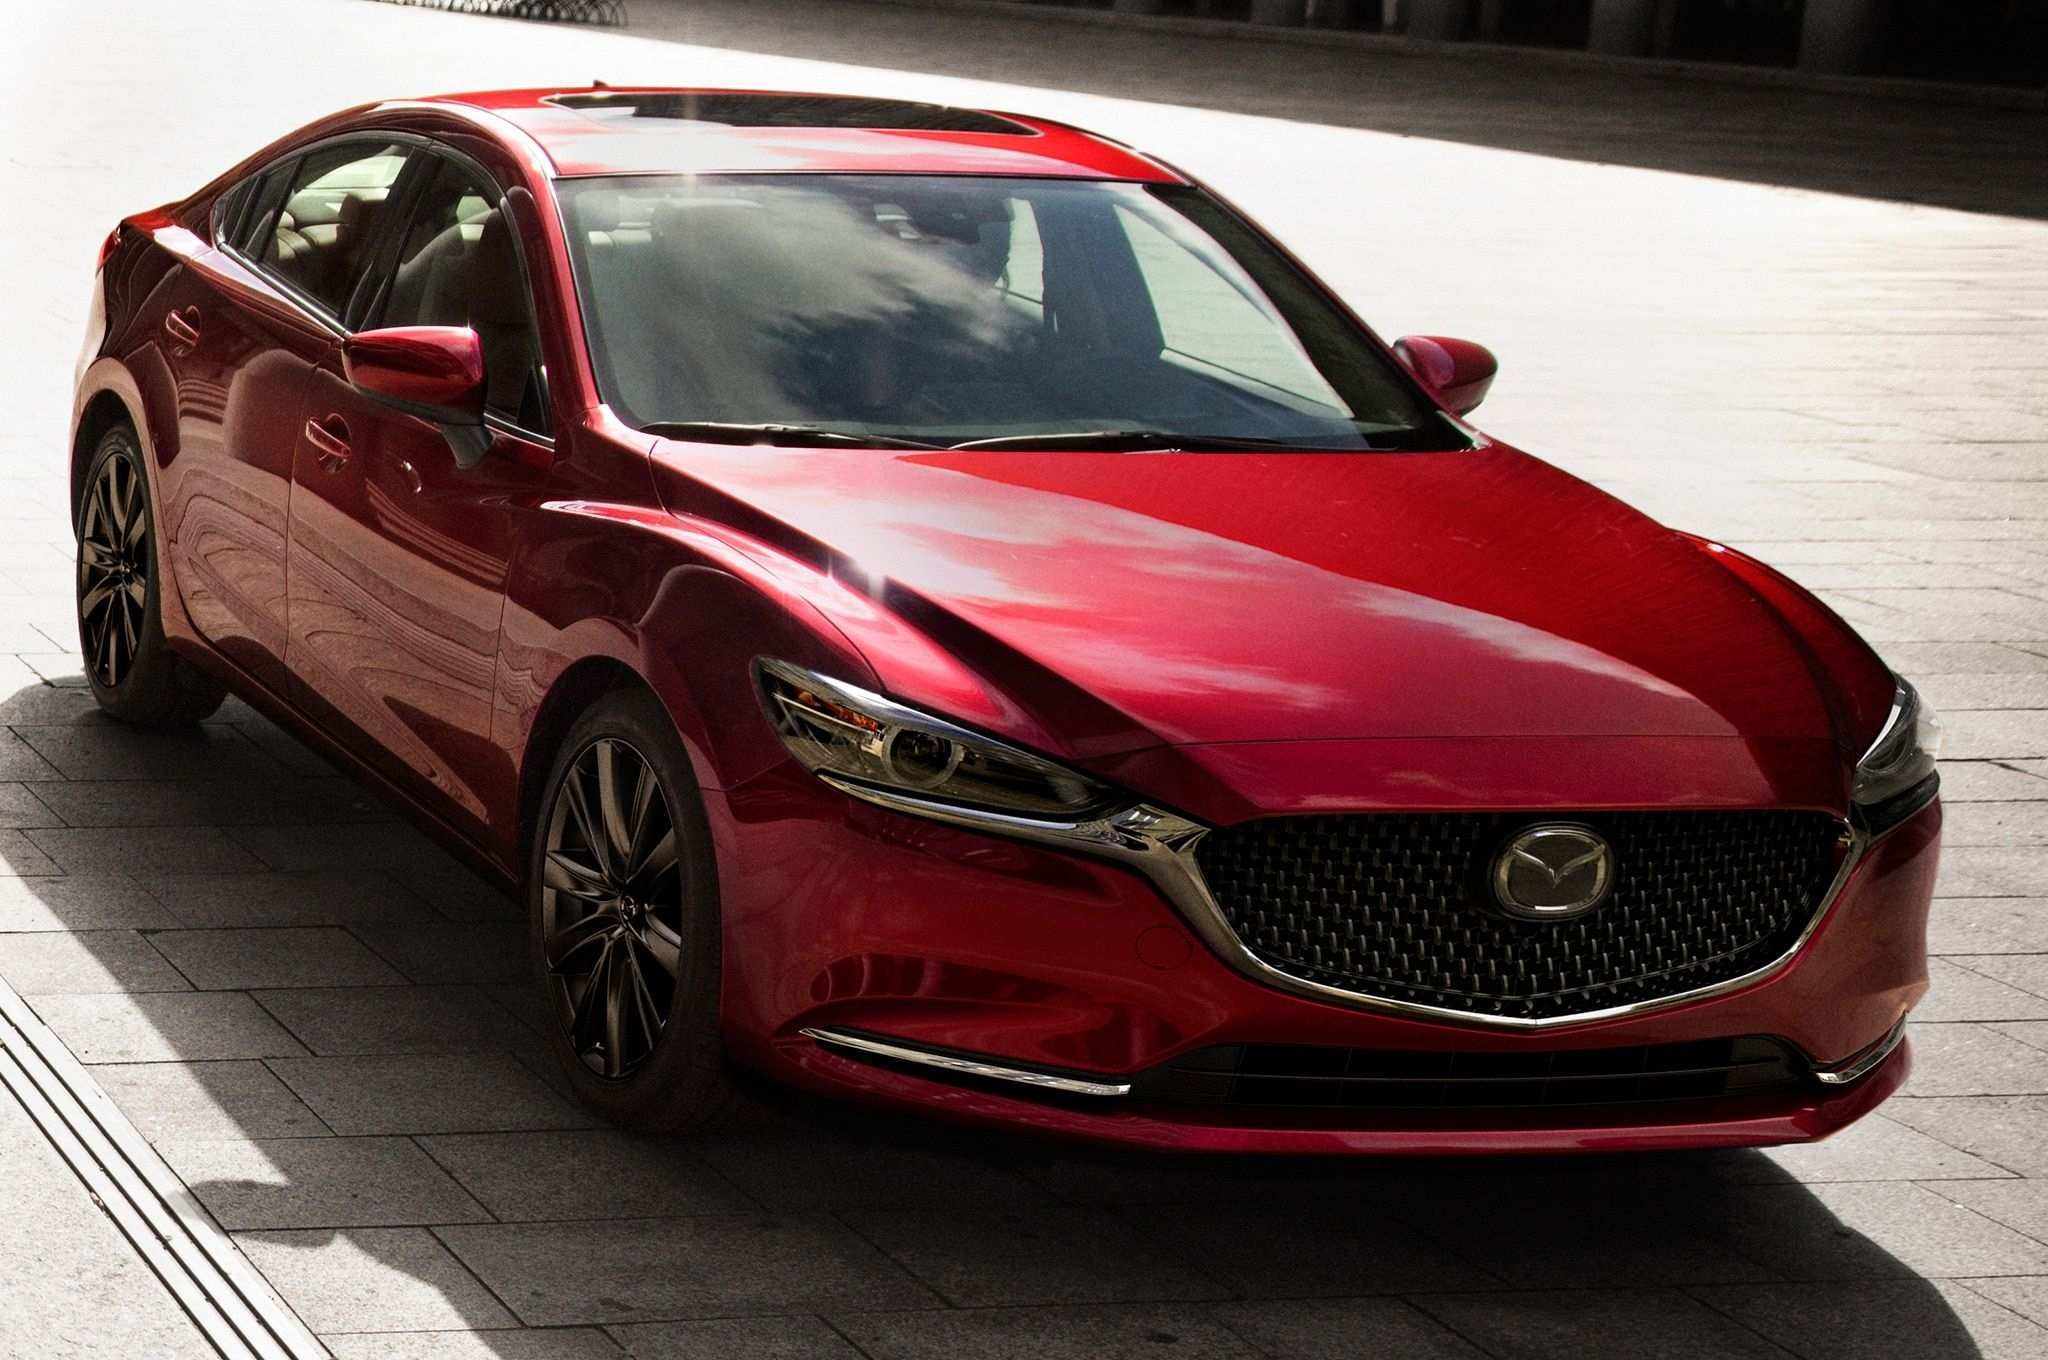 62 The Best 2019 Mazda 6 Turbo 0 60 Review And Release Date